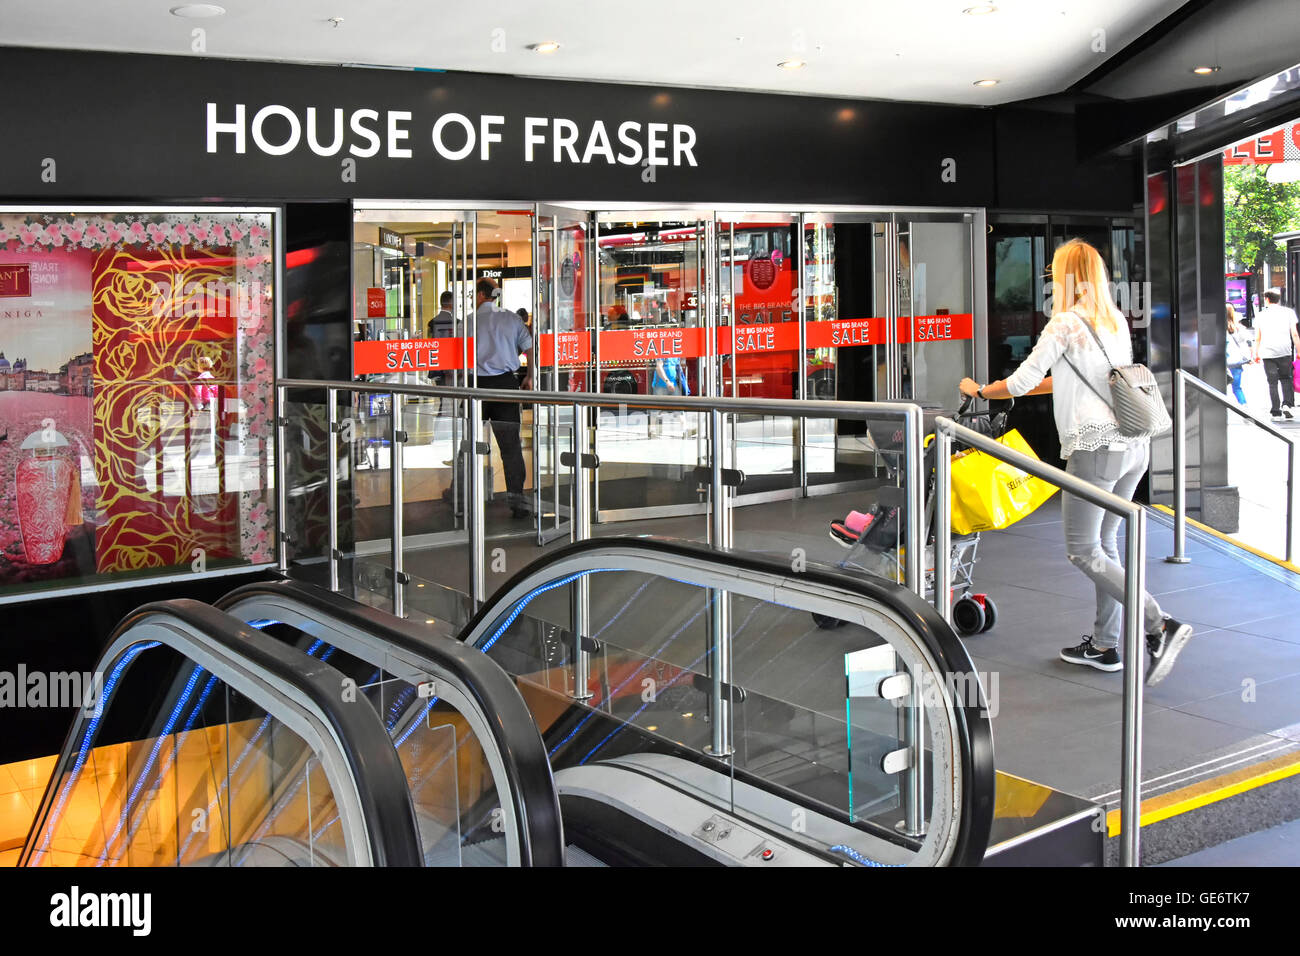 Doorway to ground floor entrance of Oxford Street branch of House of Fraser department store with escalators to - Stock Image